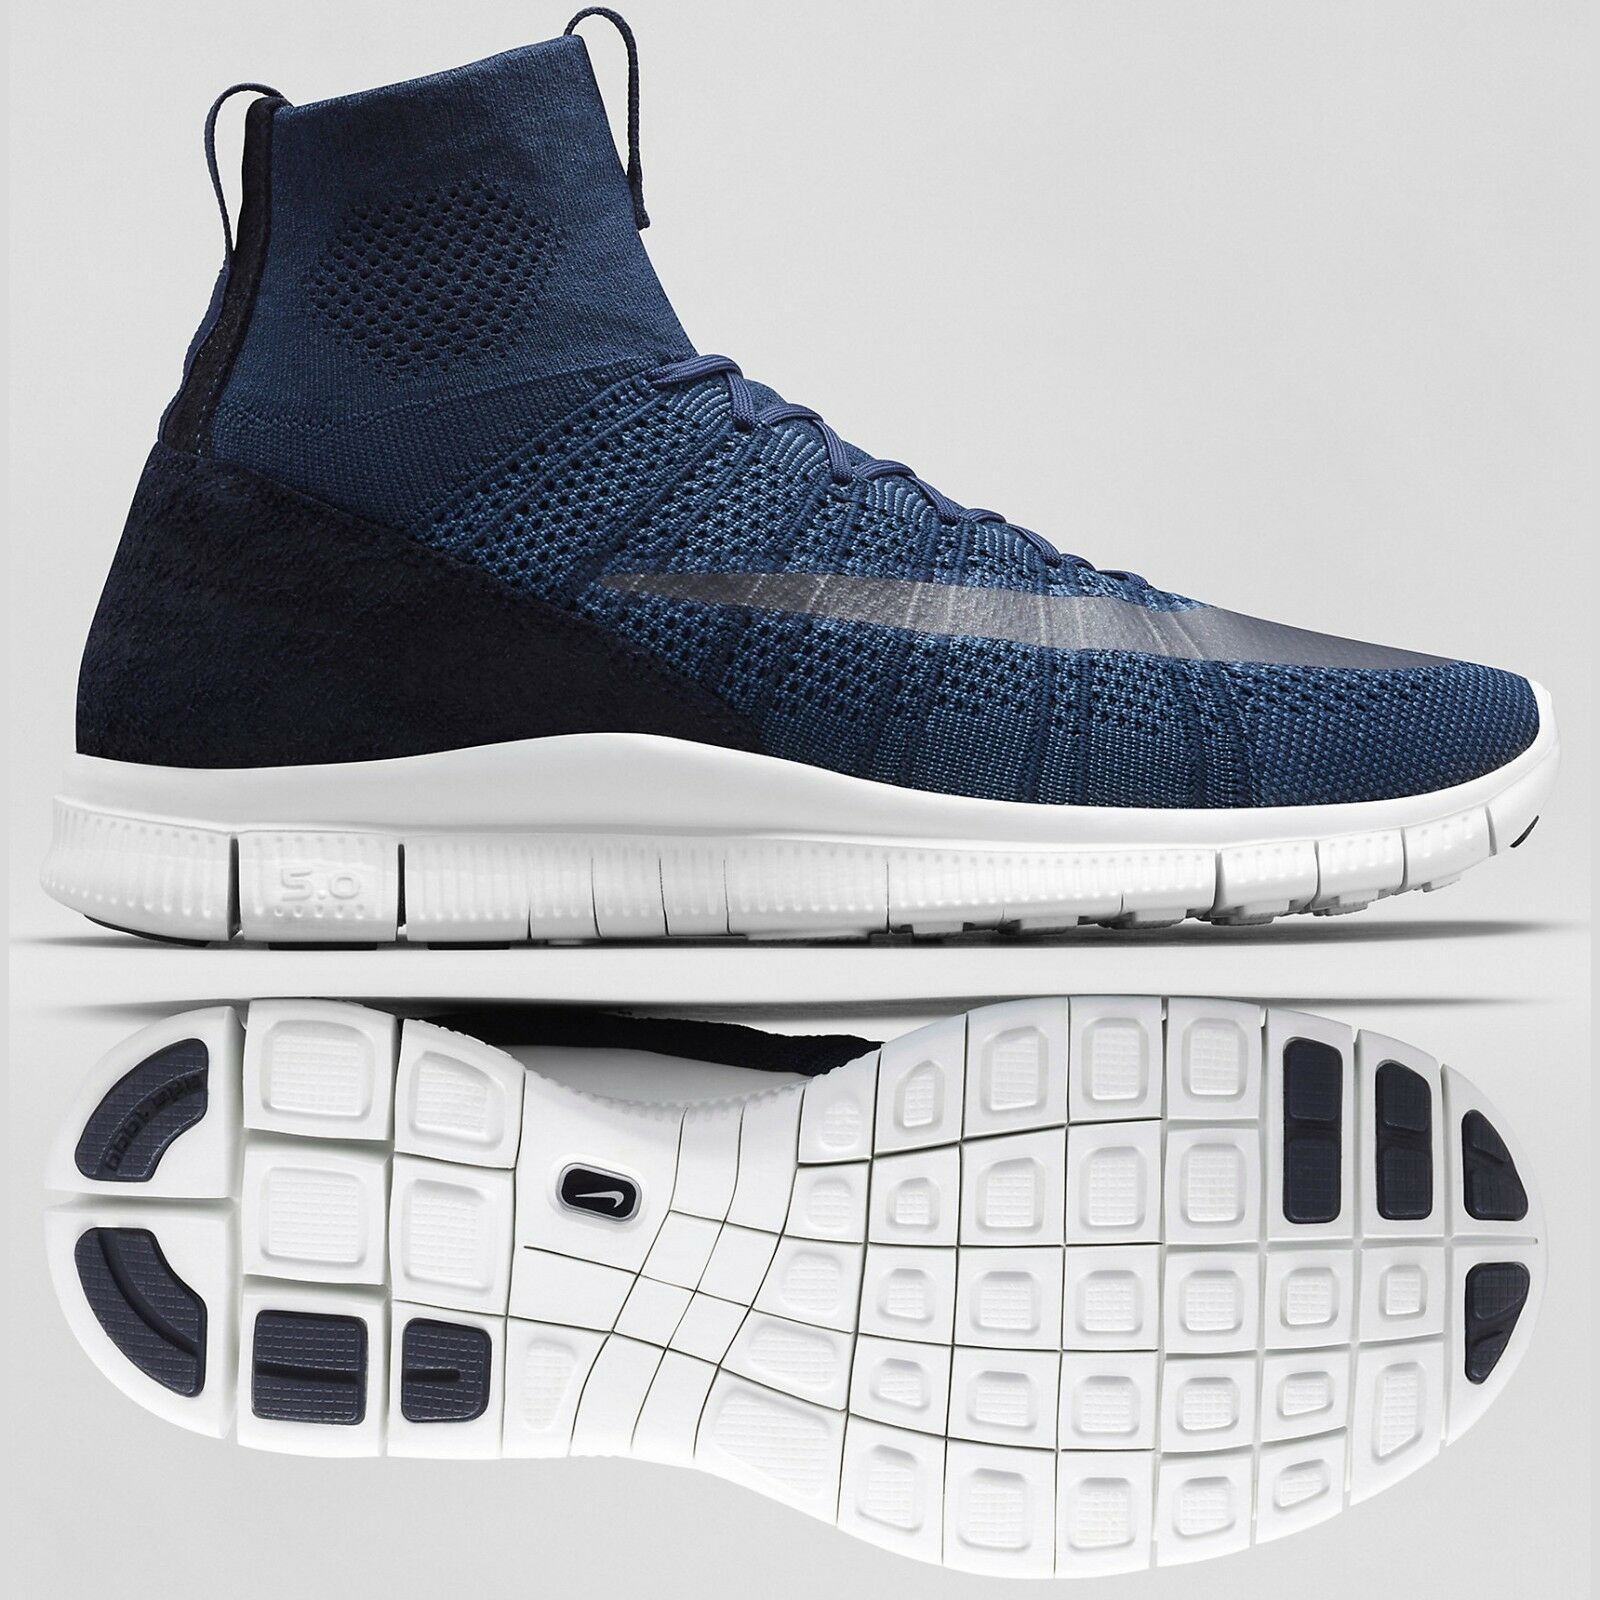 Nike HTM Free Mercurial Superfly SP 667978-441 Dark Obsidian/White Shoes CR7 Seasonal price cuts, discount benefits